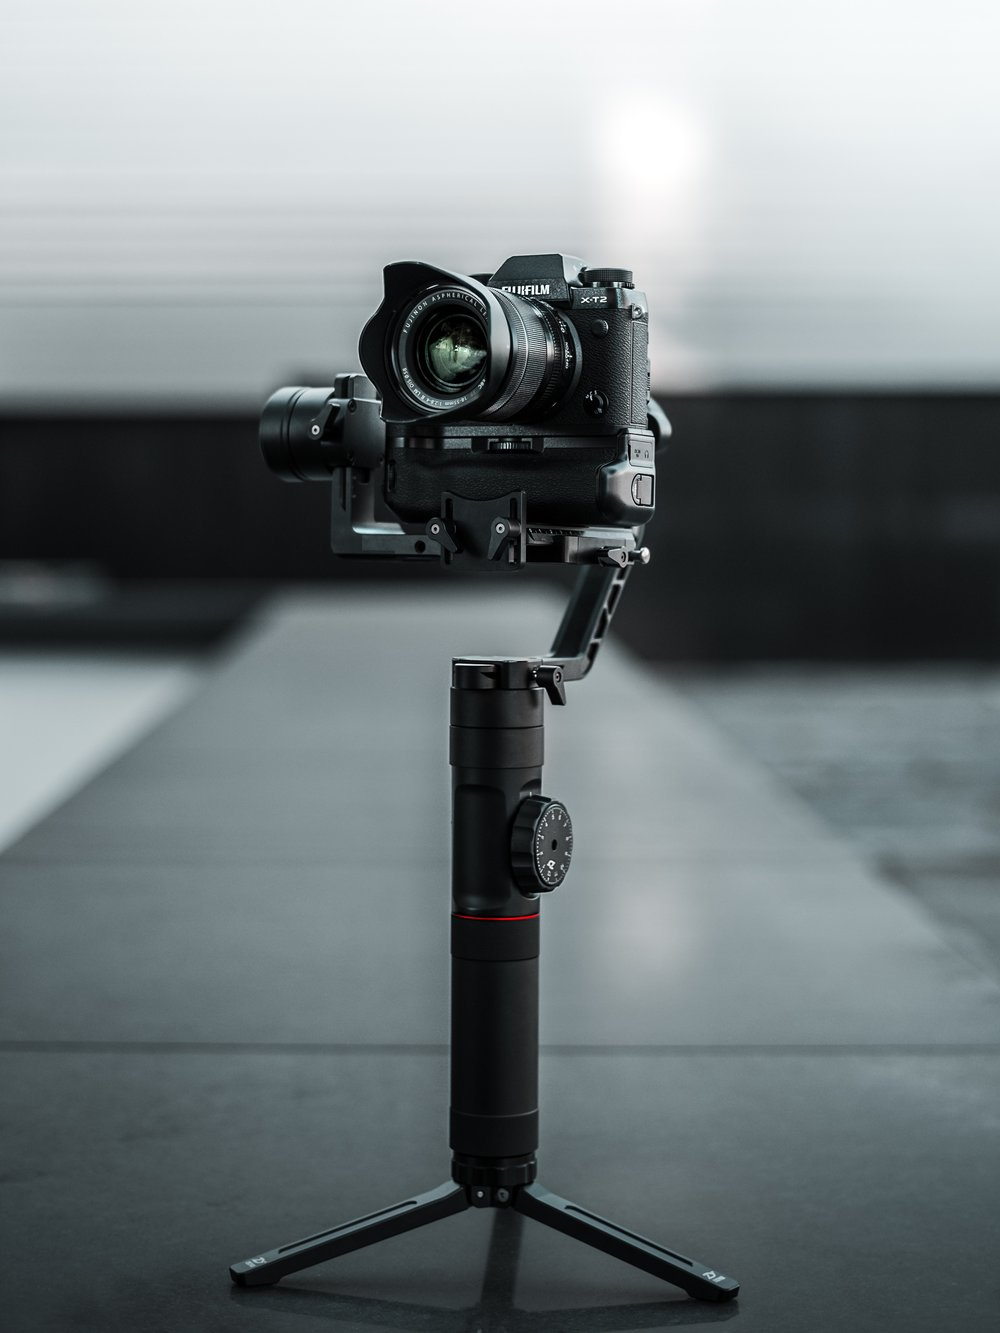 Zhiyun Crane 2 - This is one of the most affordable gimbals around for smaller cameras. It will make camera movement super smooth and add an extra level of professionalism to your videos.